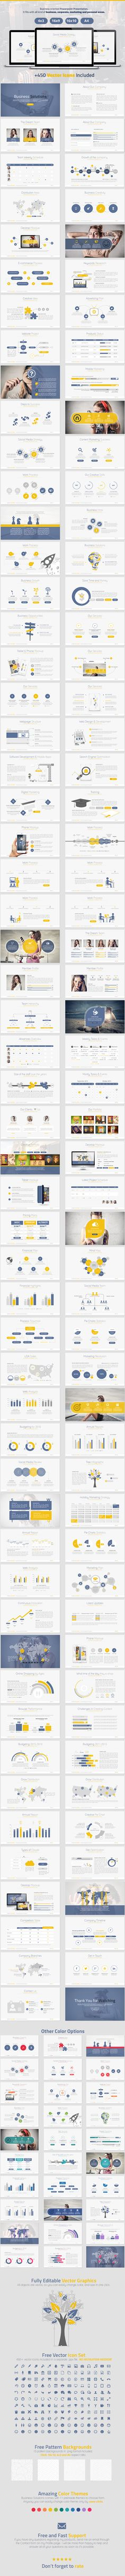 http://graphicriver.net/item/business-solutions-powerpoint-presentation/14313637?ref=veshi